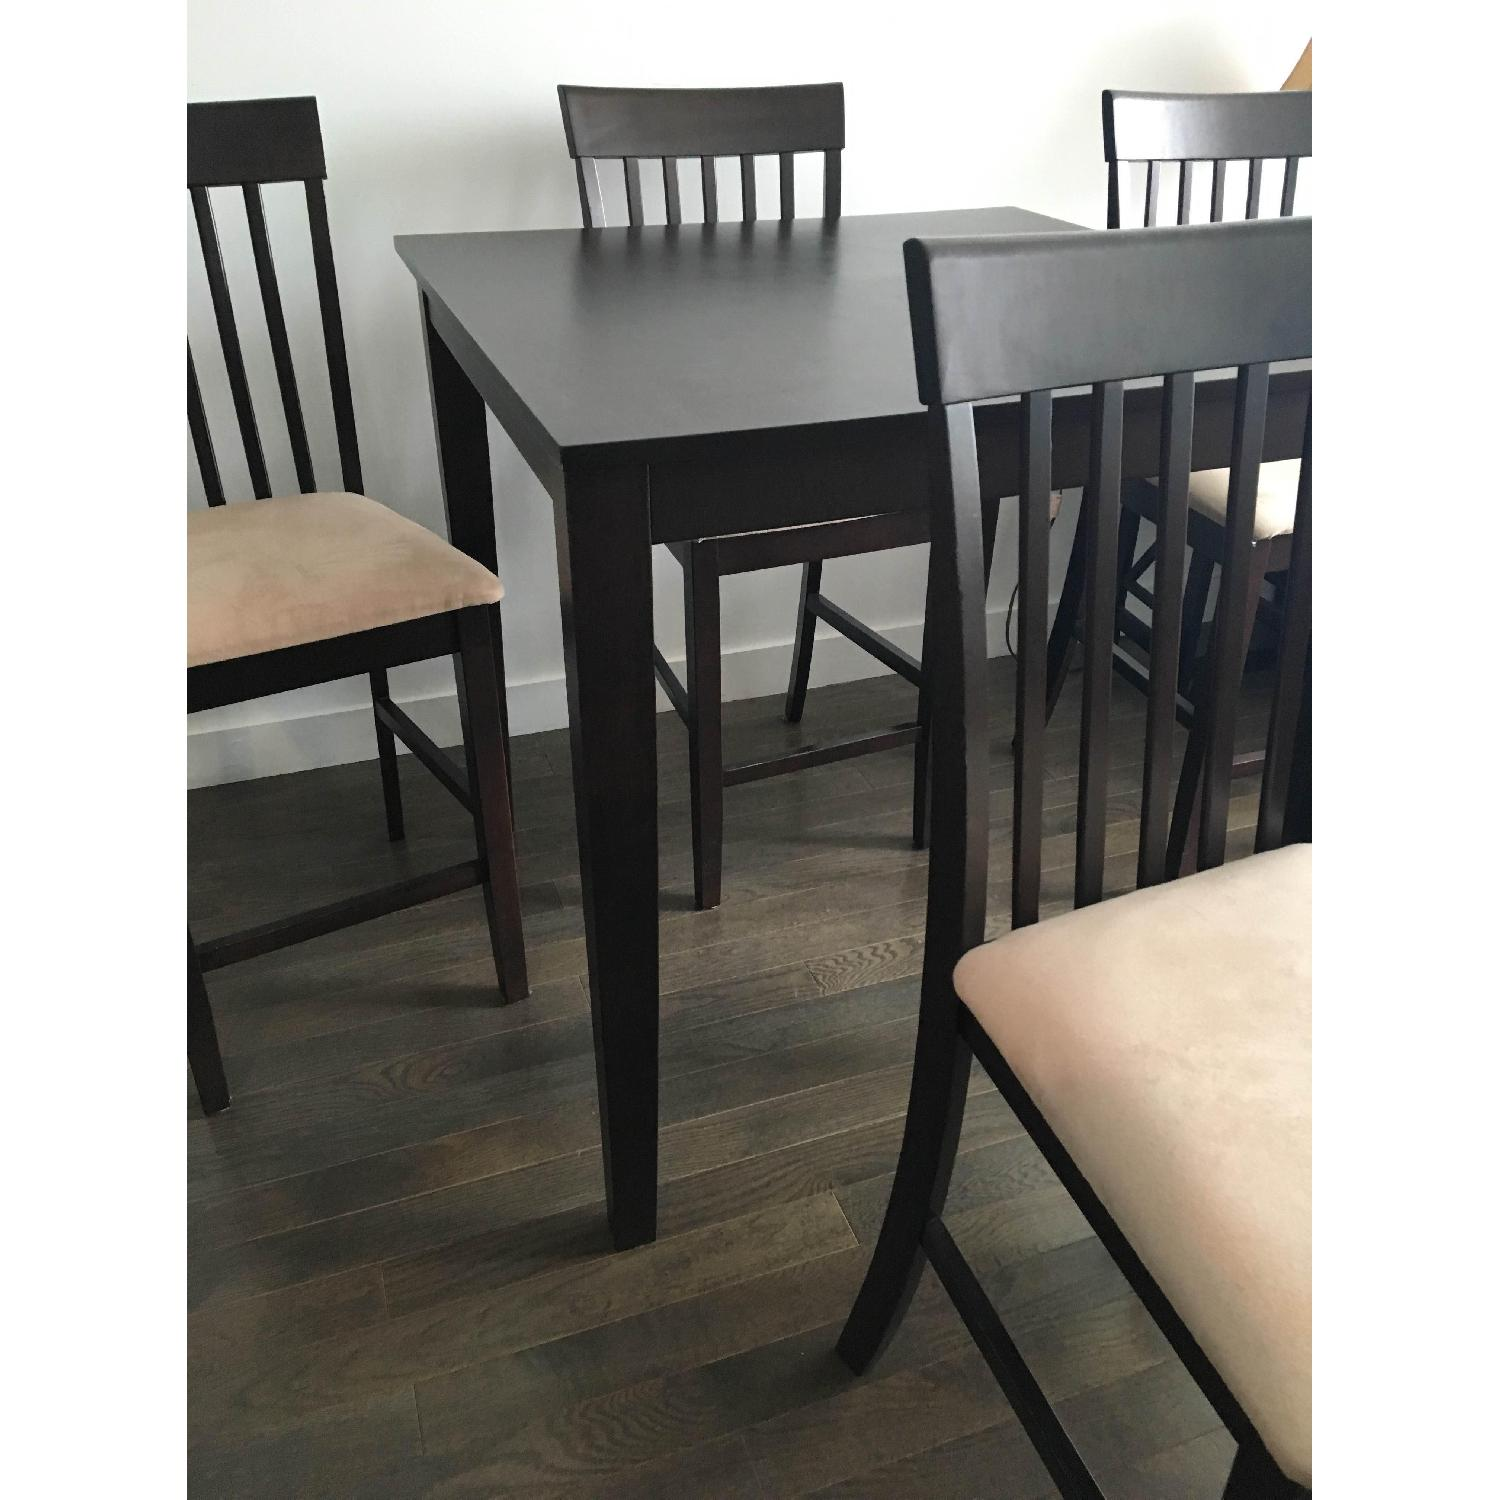 The Door Store Solid Wood 5 Piece Counter Height Dining Set - image-7